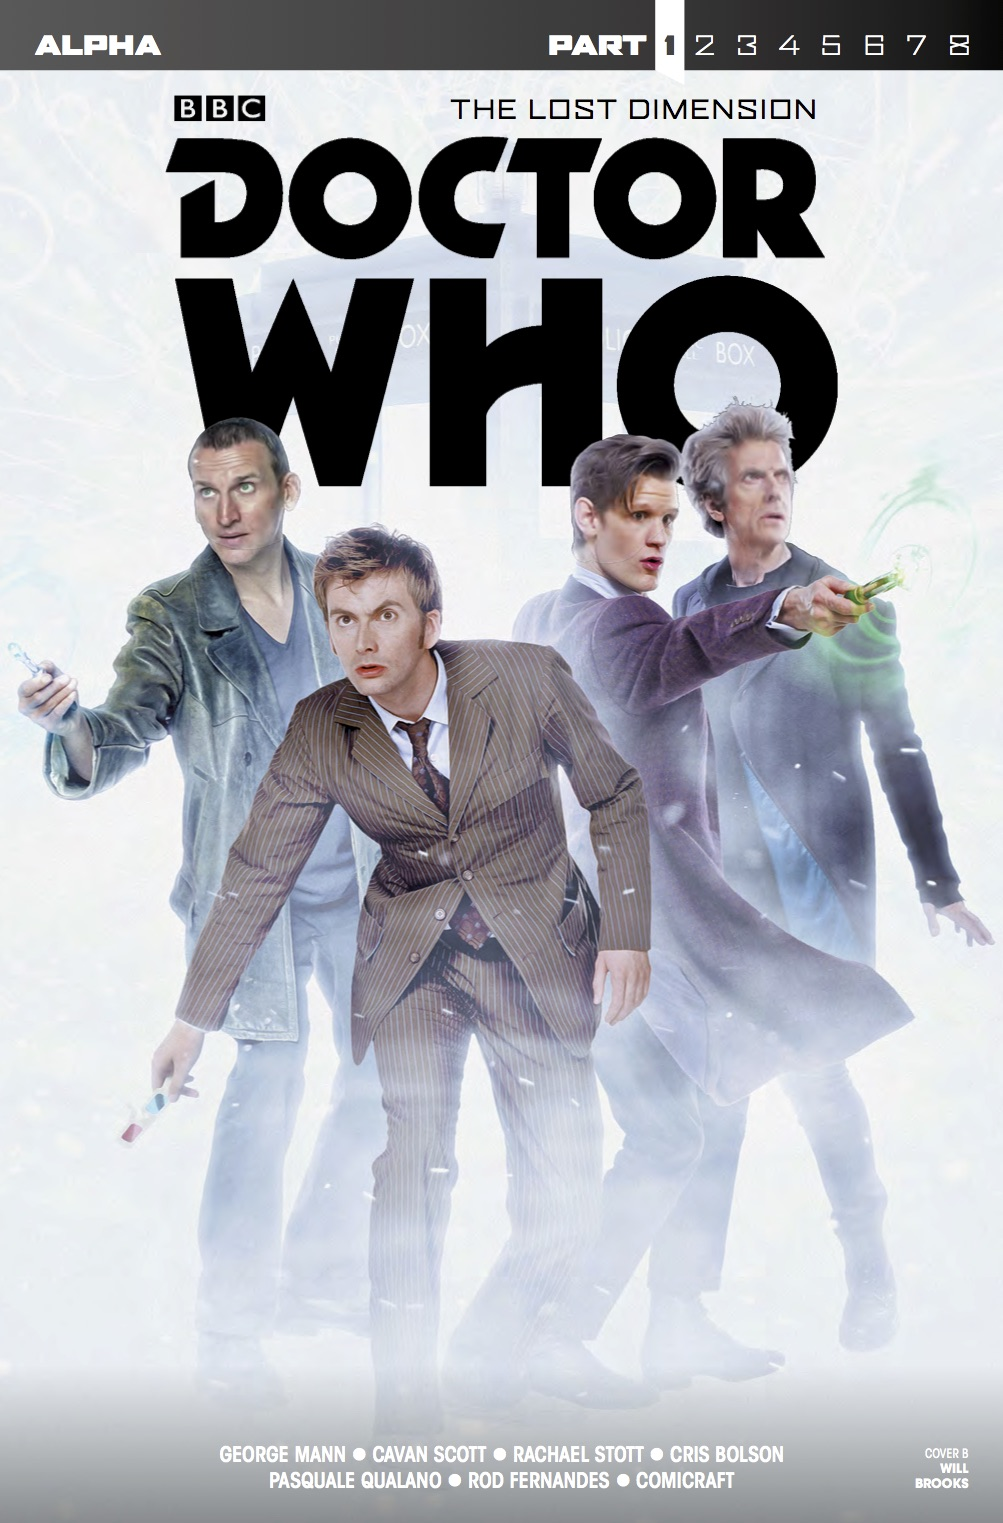 Doctor Who: The Lost Dimension - Alpha - Cover B (Credit: Titan)